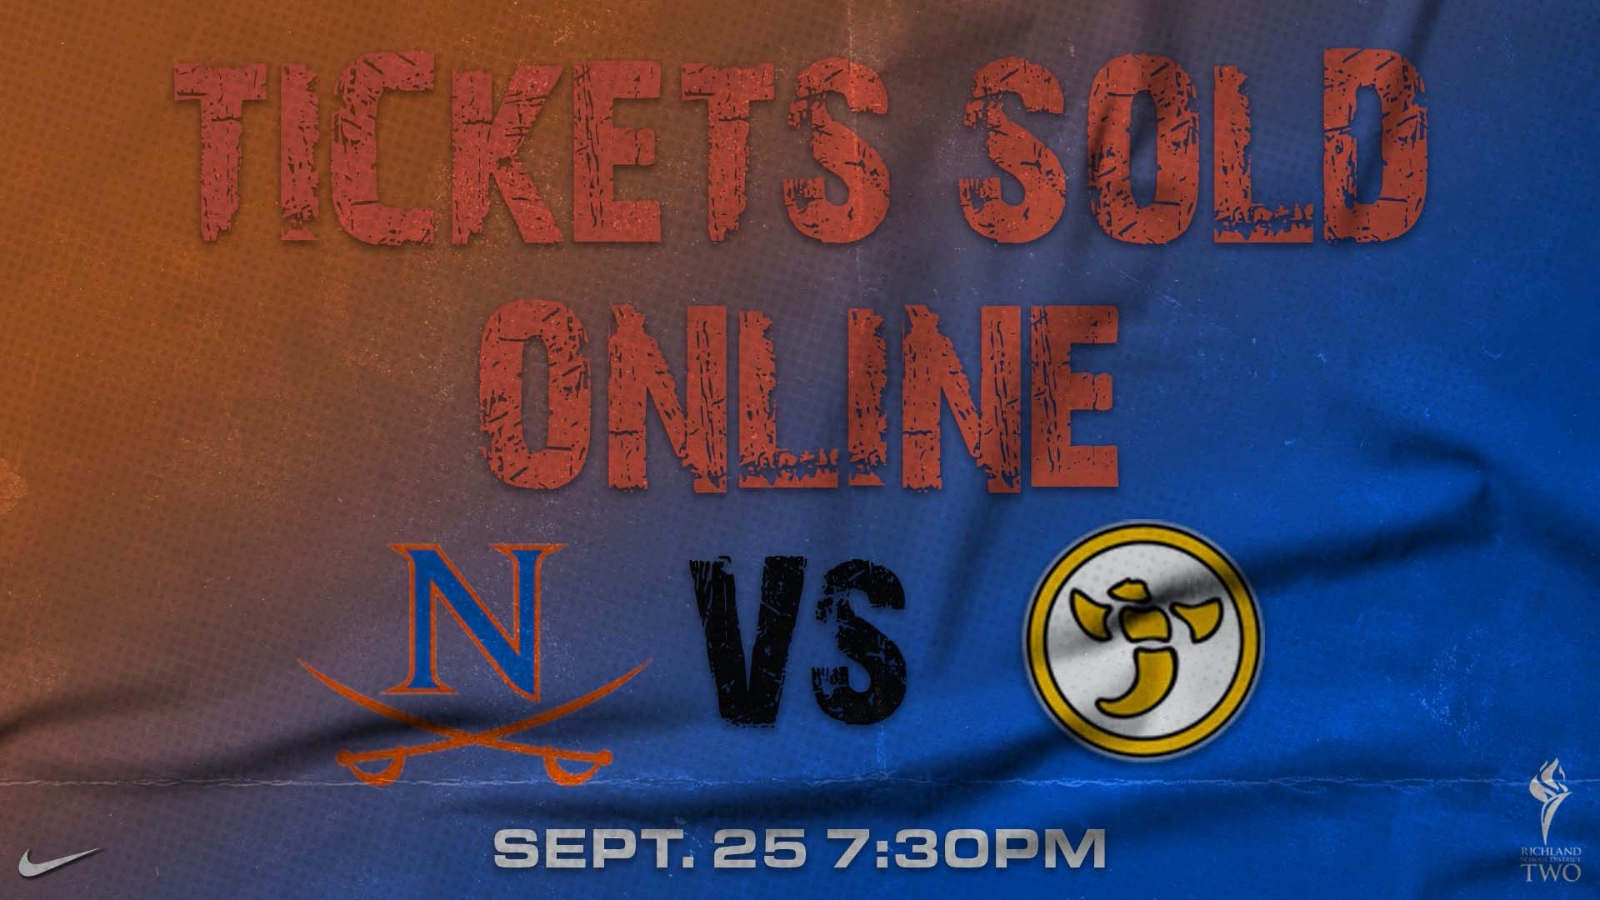 Online Football Game Tickets are now on Sale for Sept. 25th Game